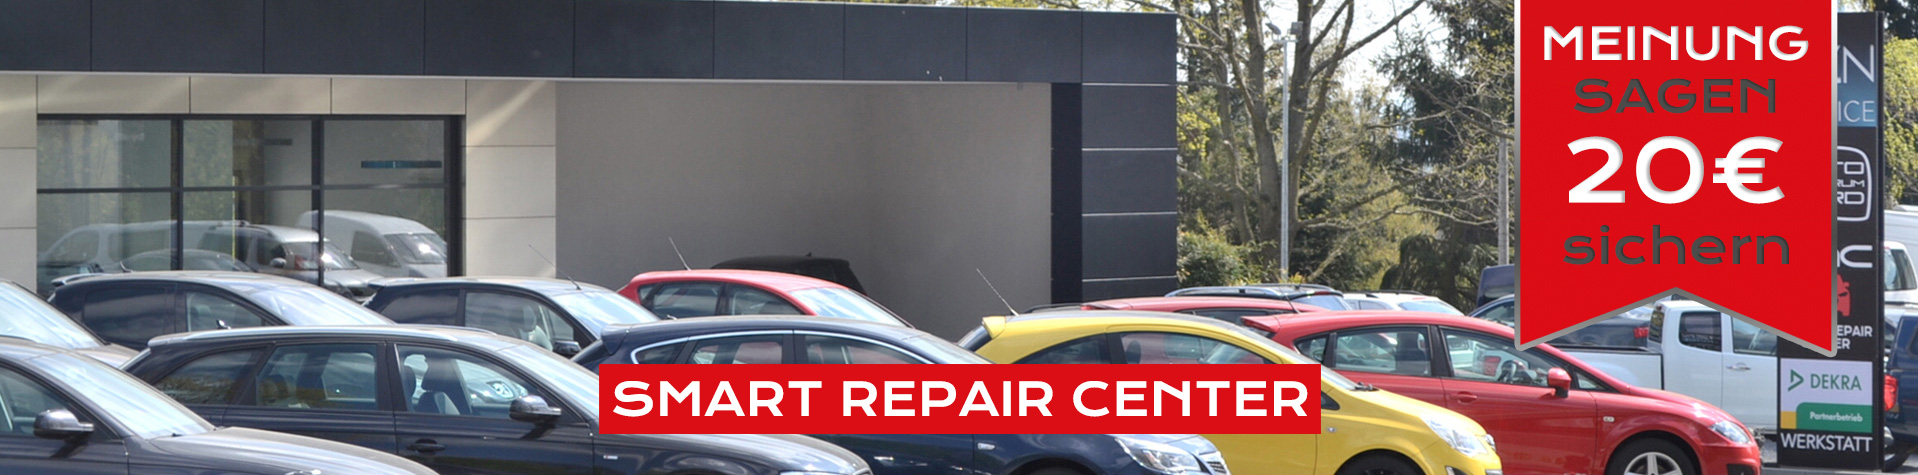 Spot Repair Selber Machen Startseite Fac Smart Repair Center Chemnitz Smart Repair